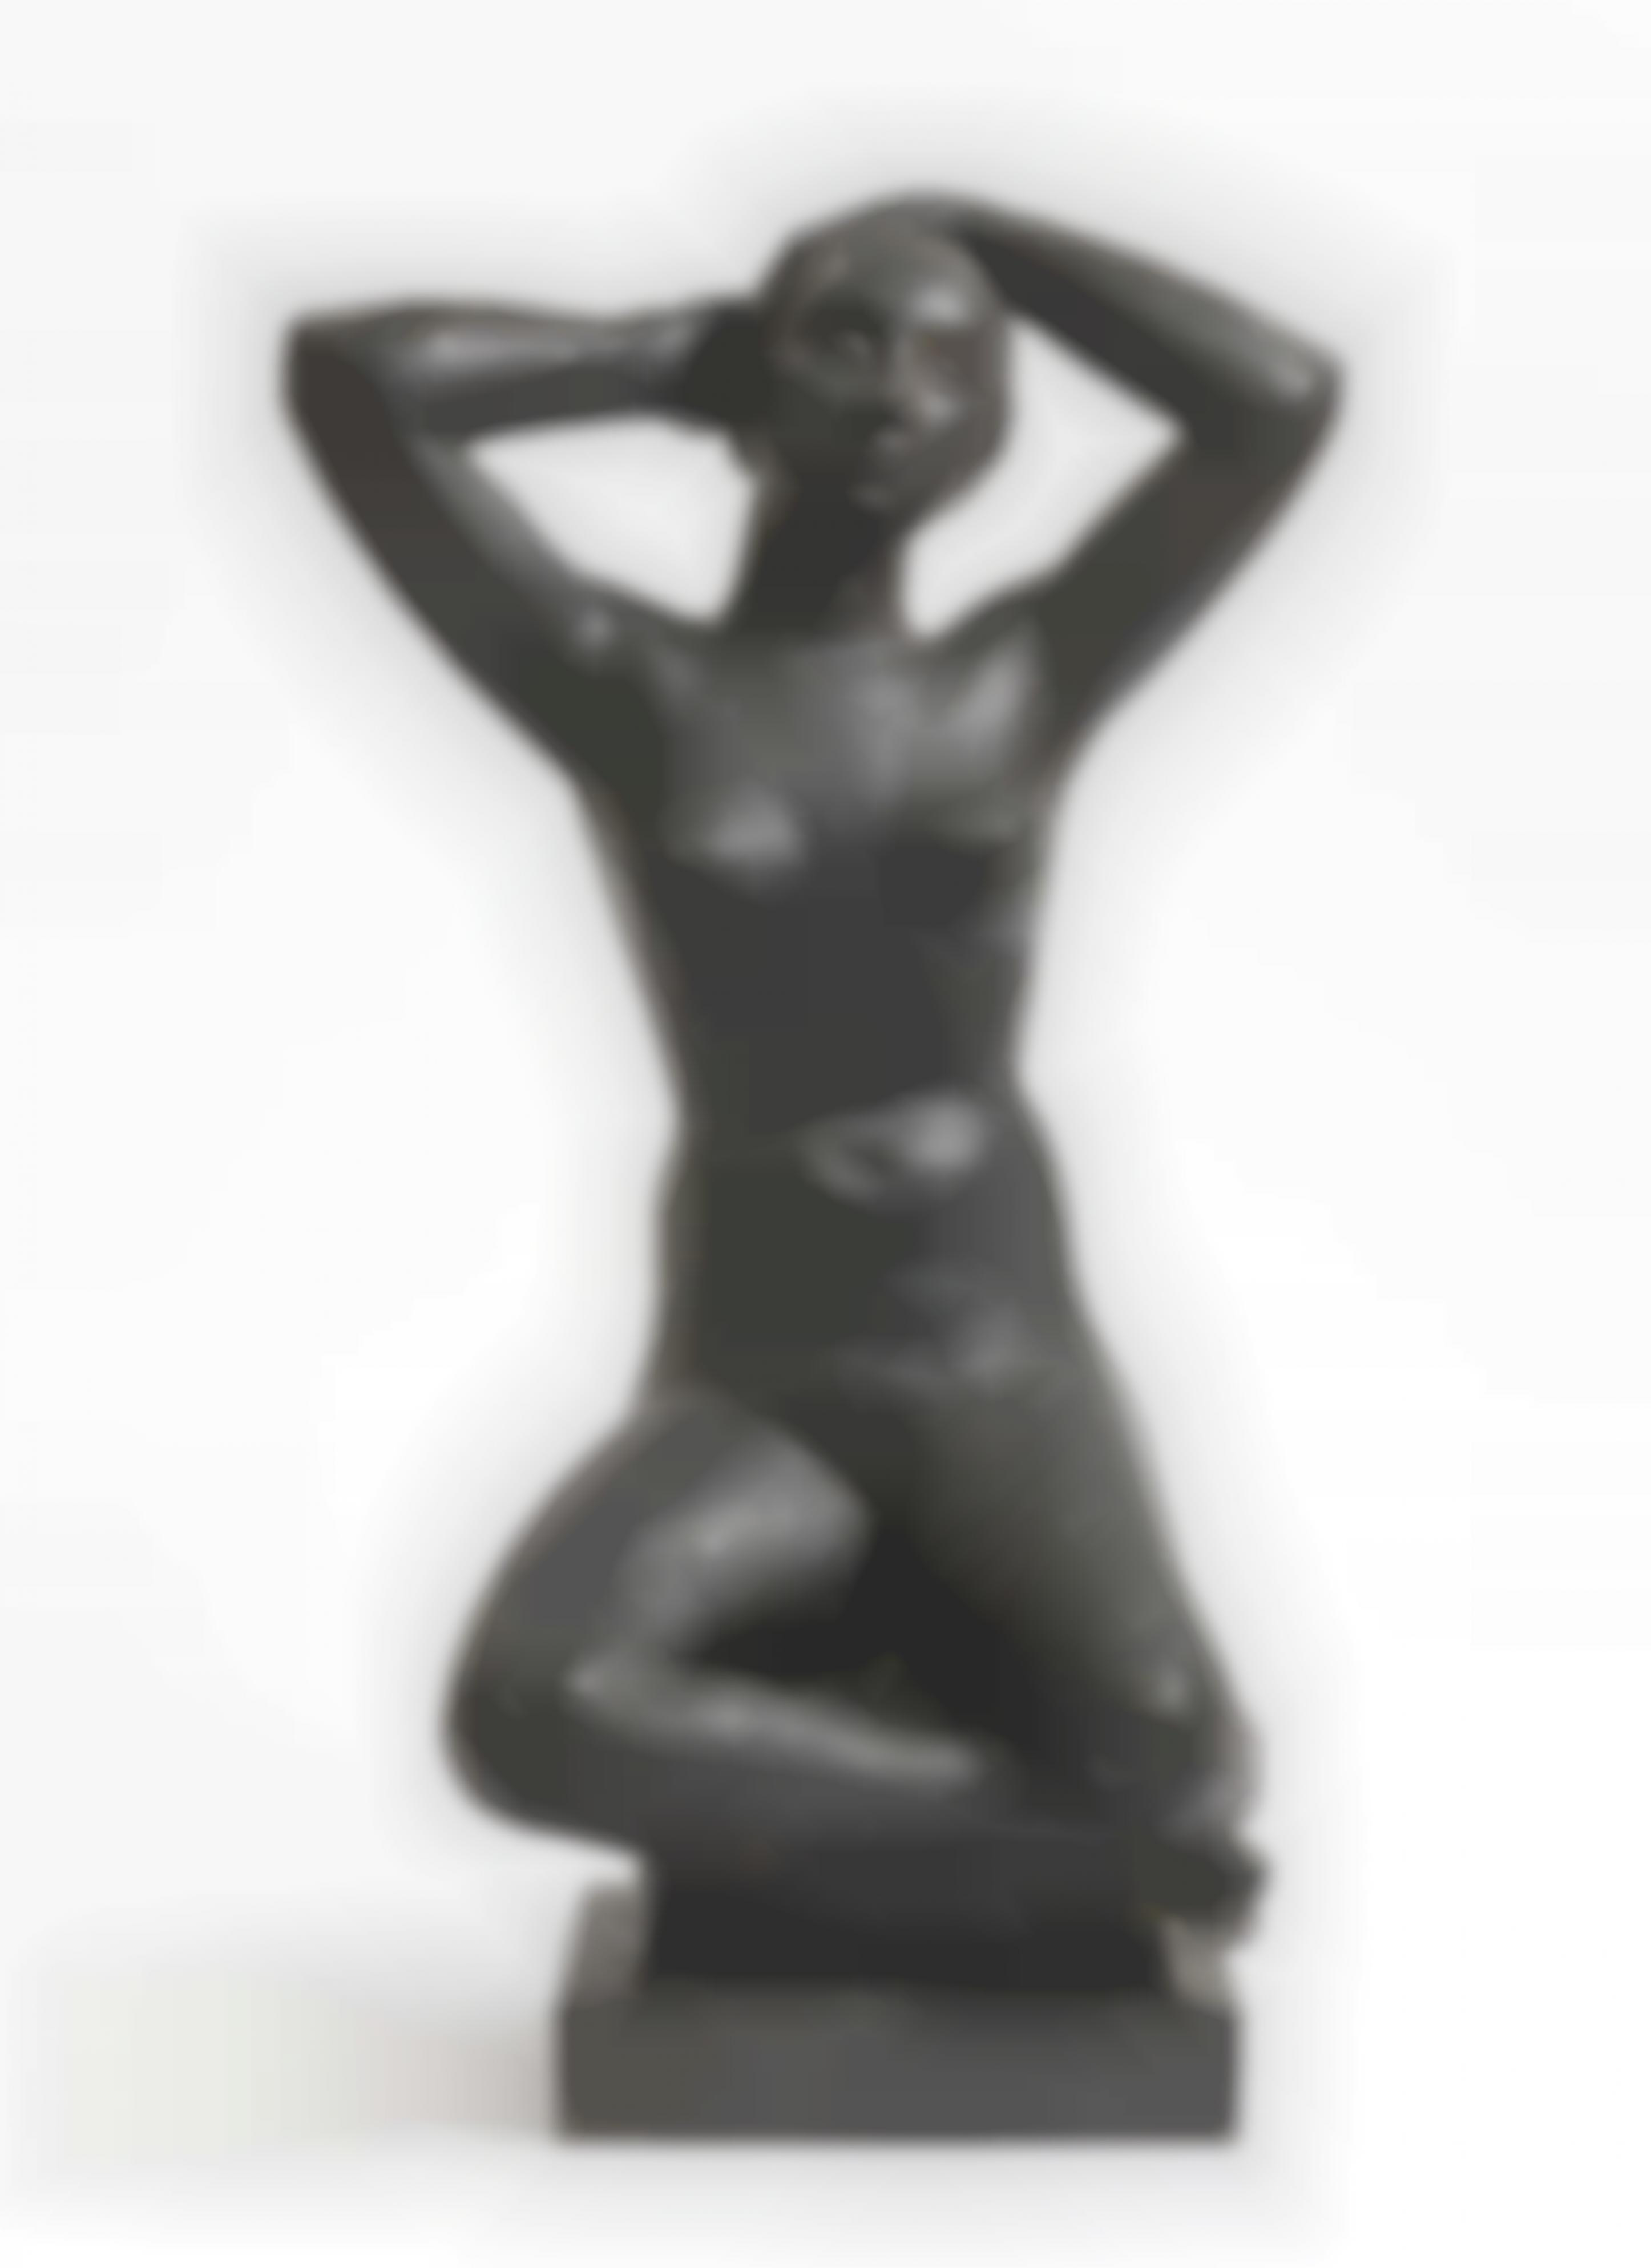 Herta Ottolenghi-Wedekind - Sitting Nude With Arms Raised-1933